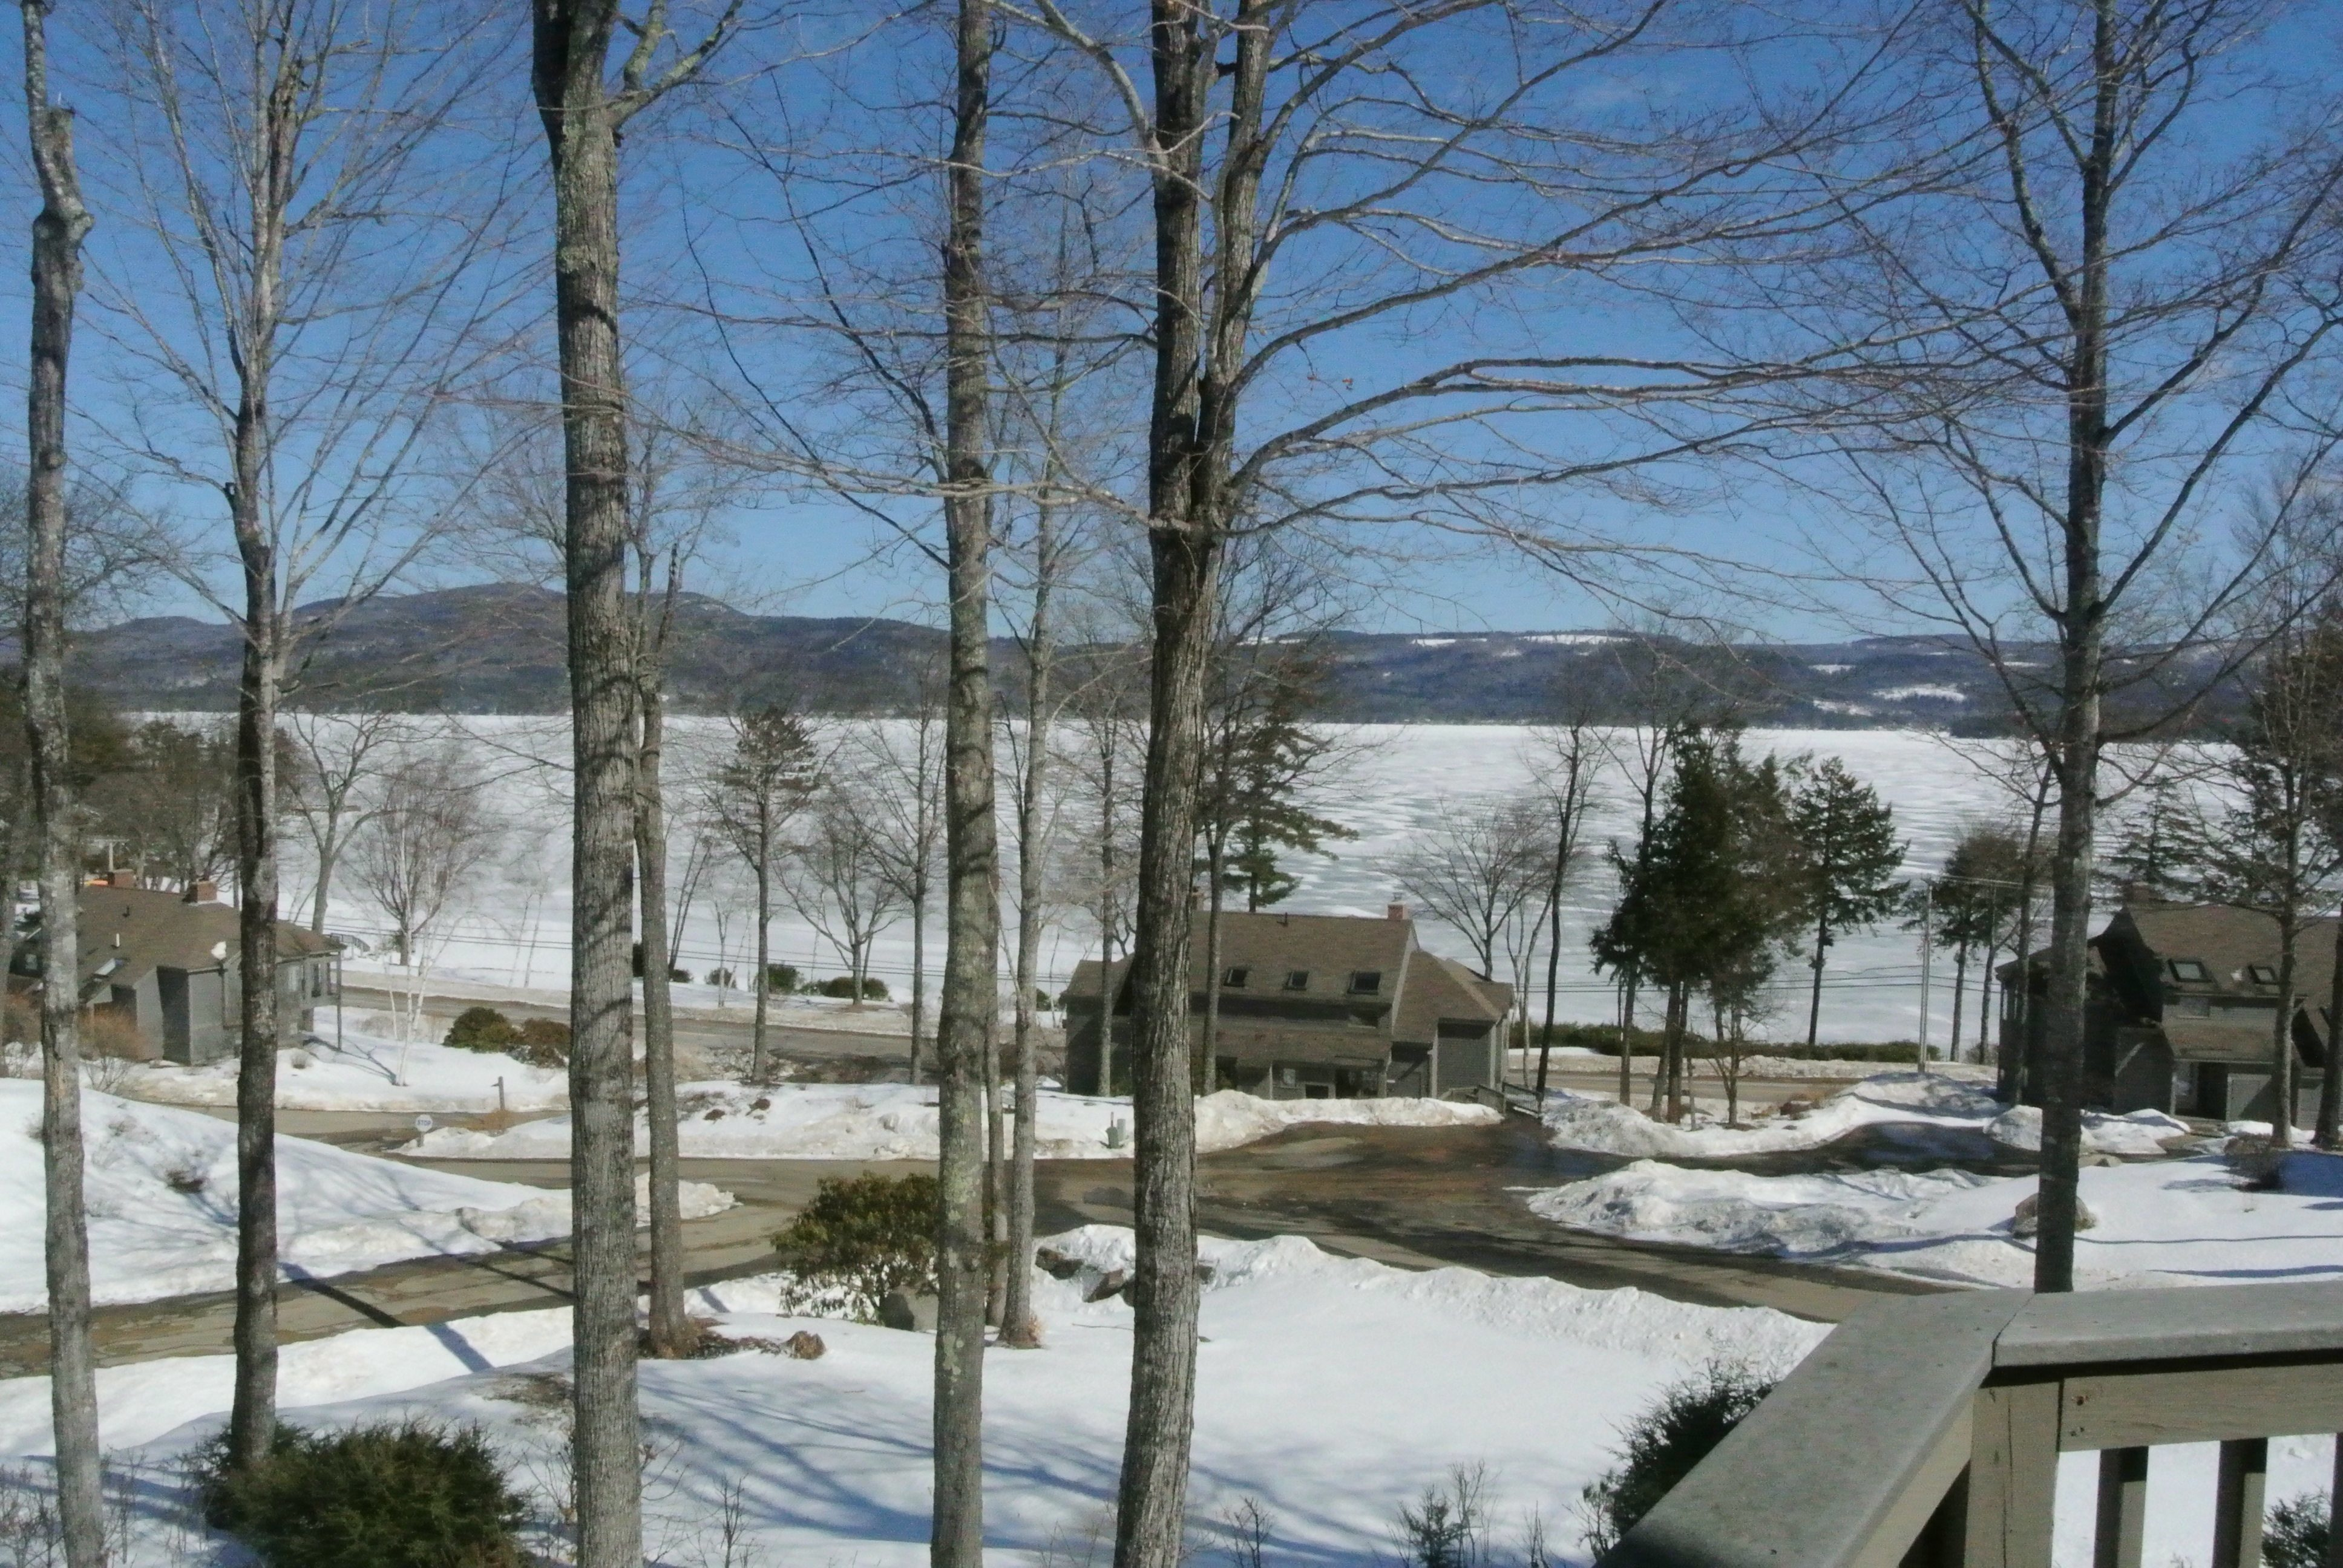 lakefront condos for sale in nh - New Hampshire